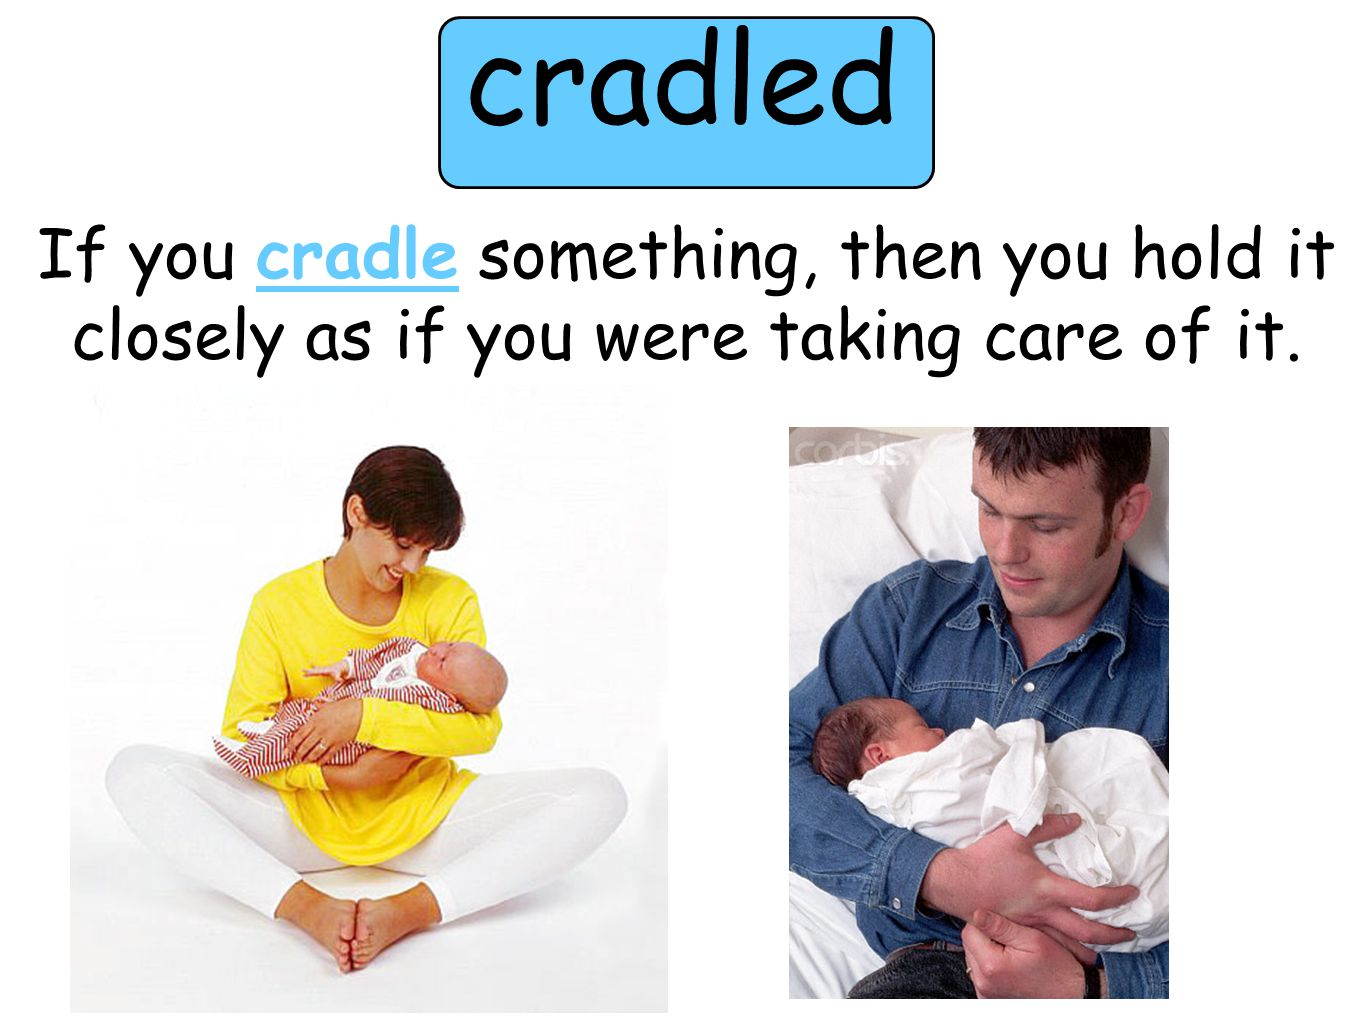 cradled If you cradle something, then you hold it closely as if you were taking care of it.